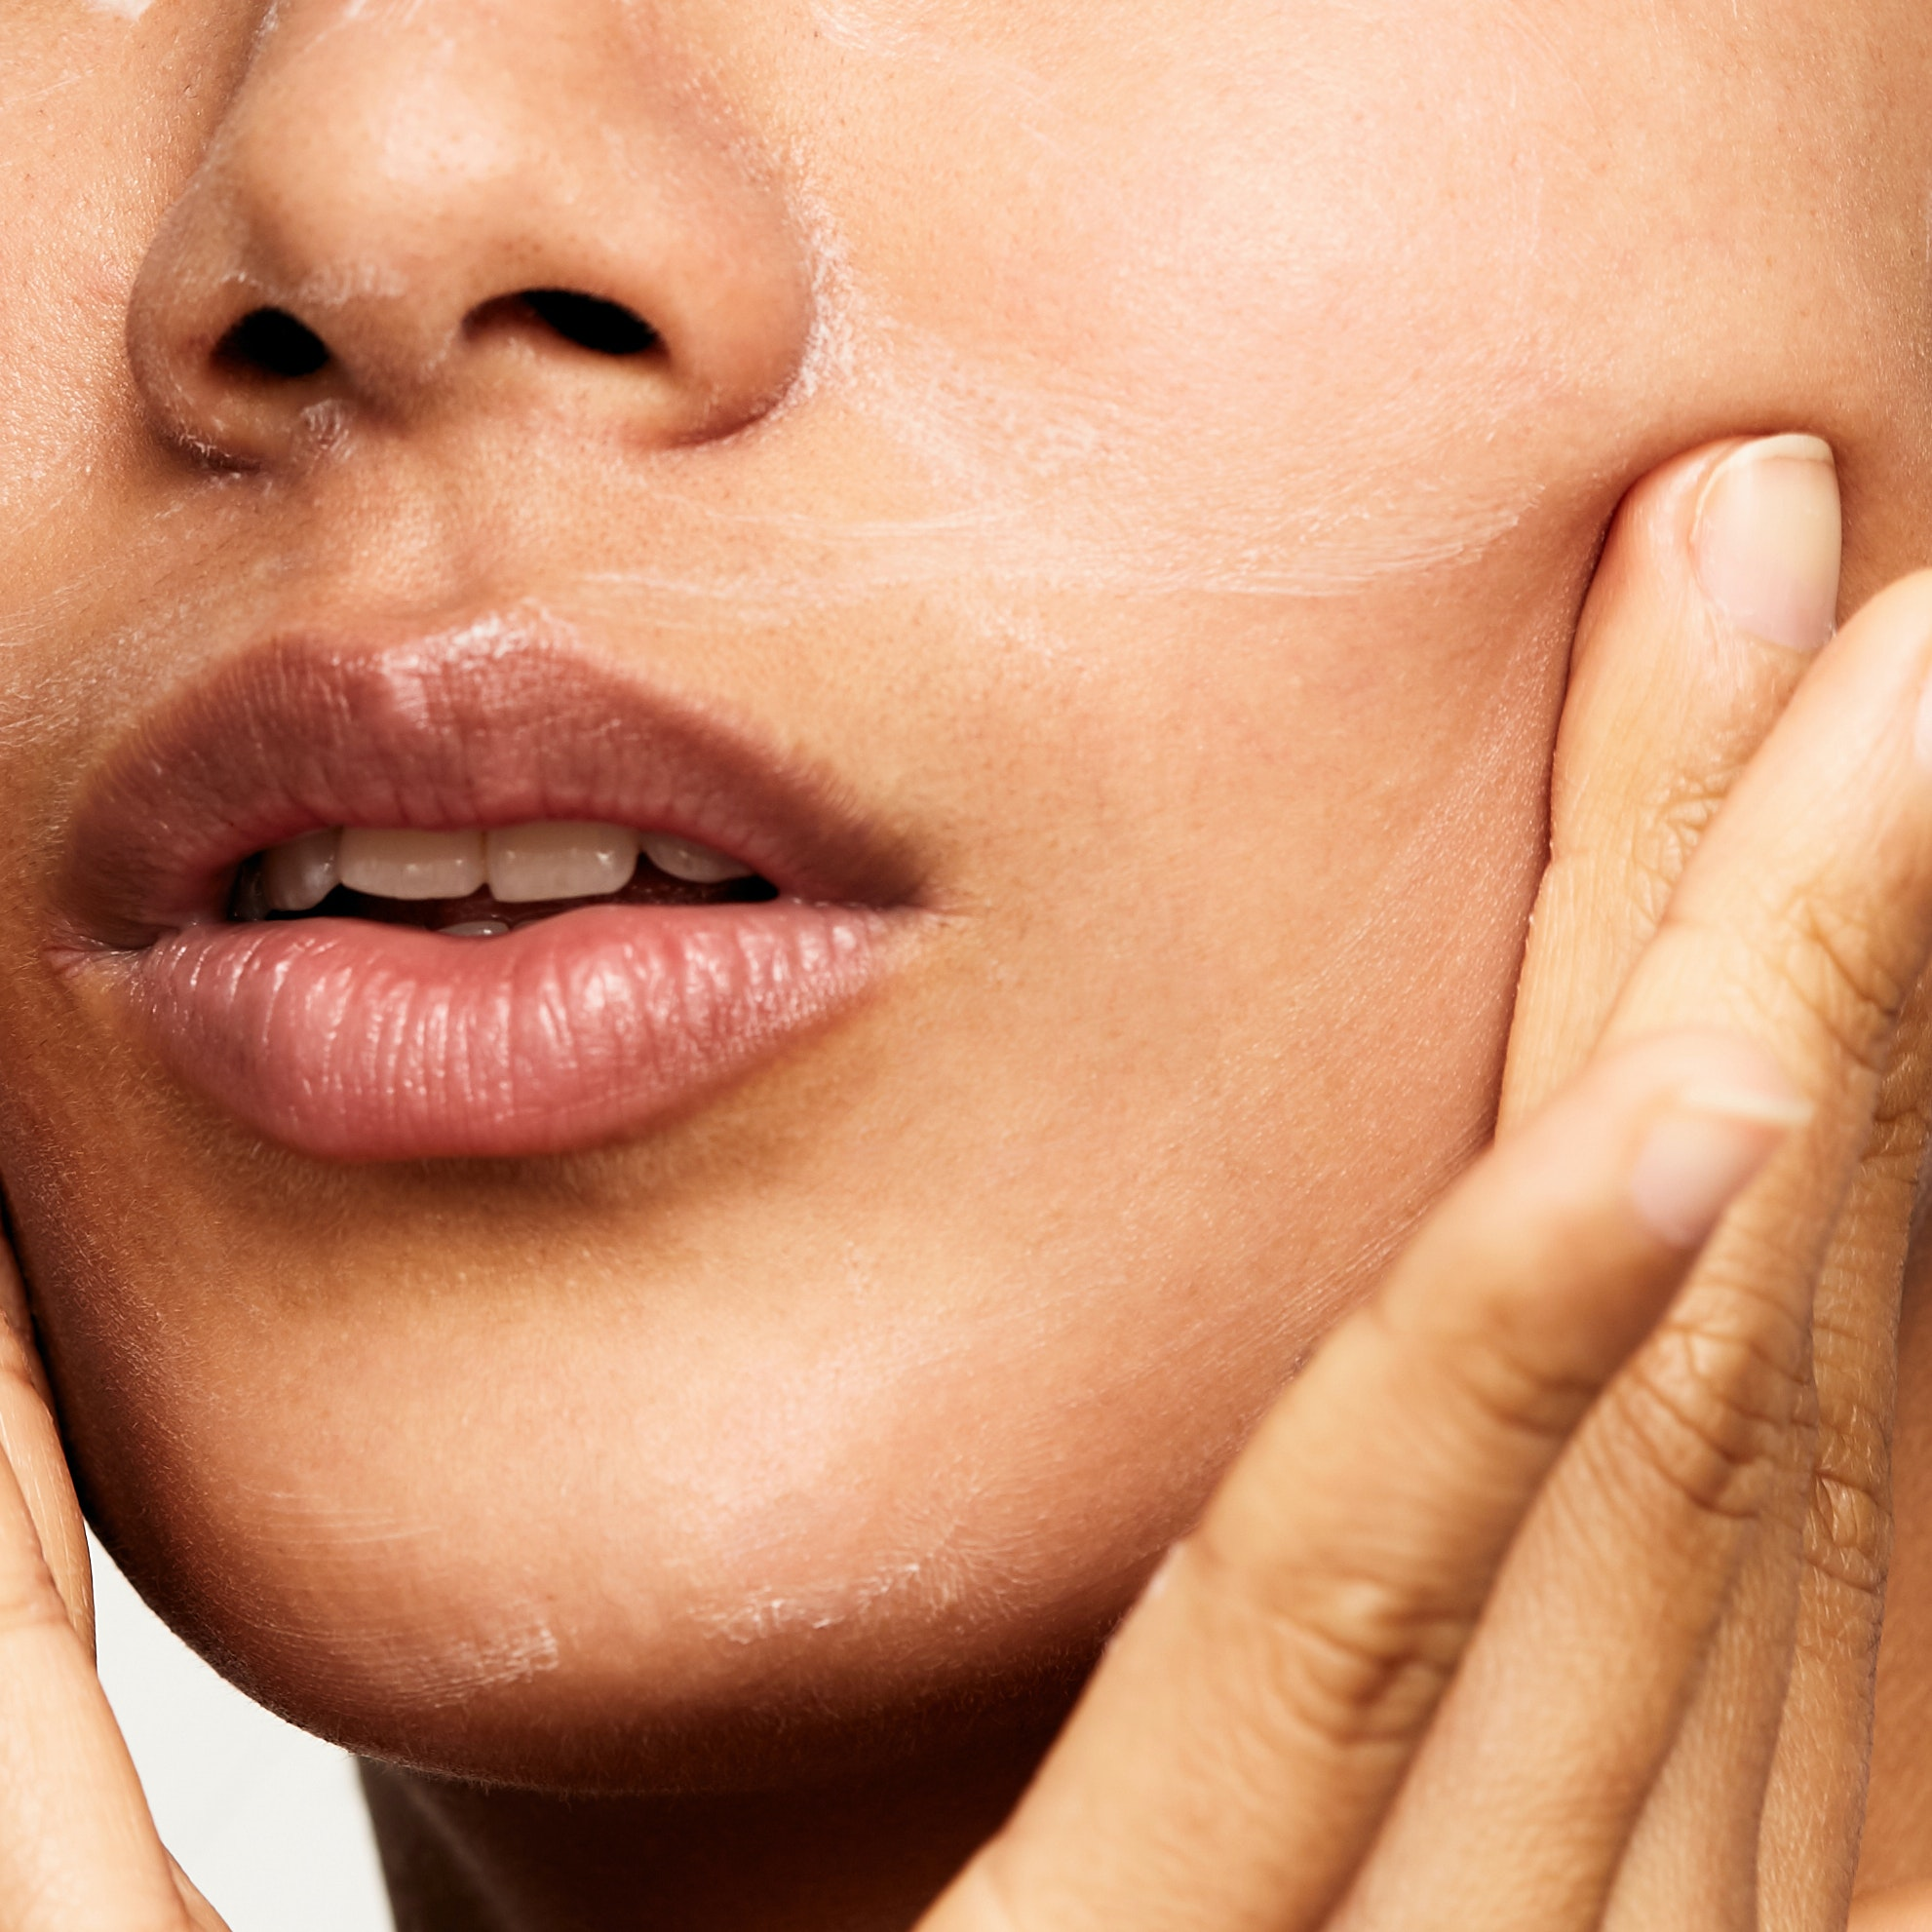 If You're Not Already Using Retinol, You're Probably Missing Out on Its Anti-Aging Benefits